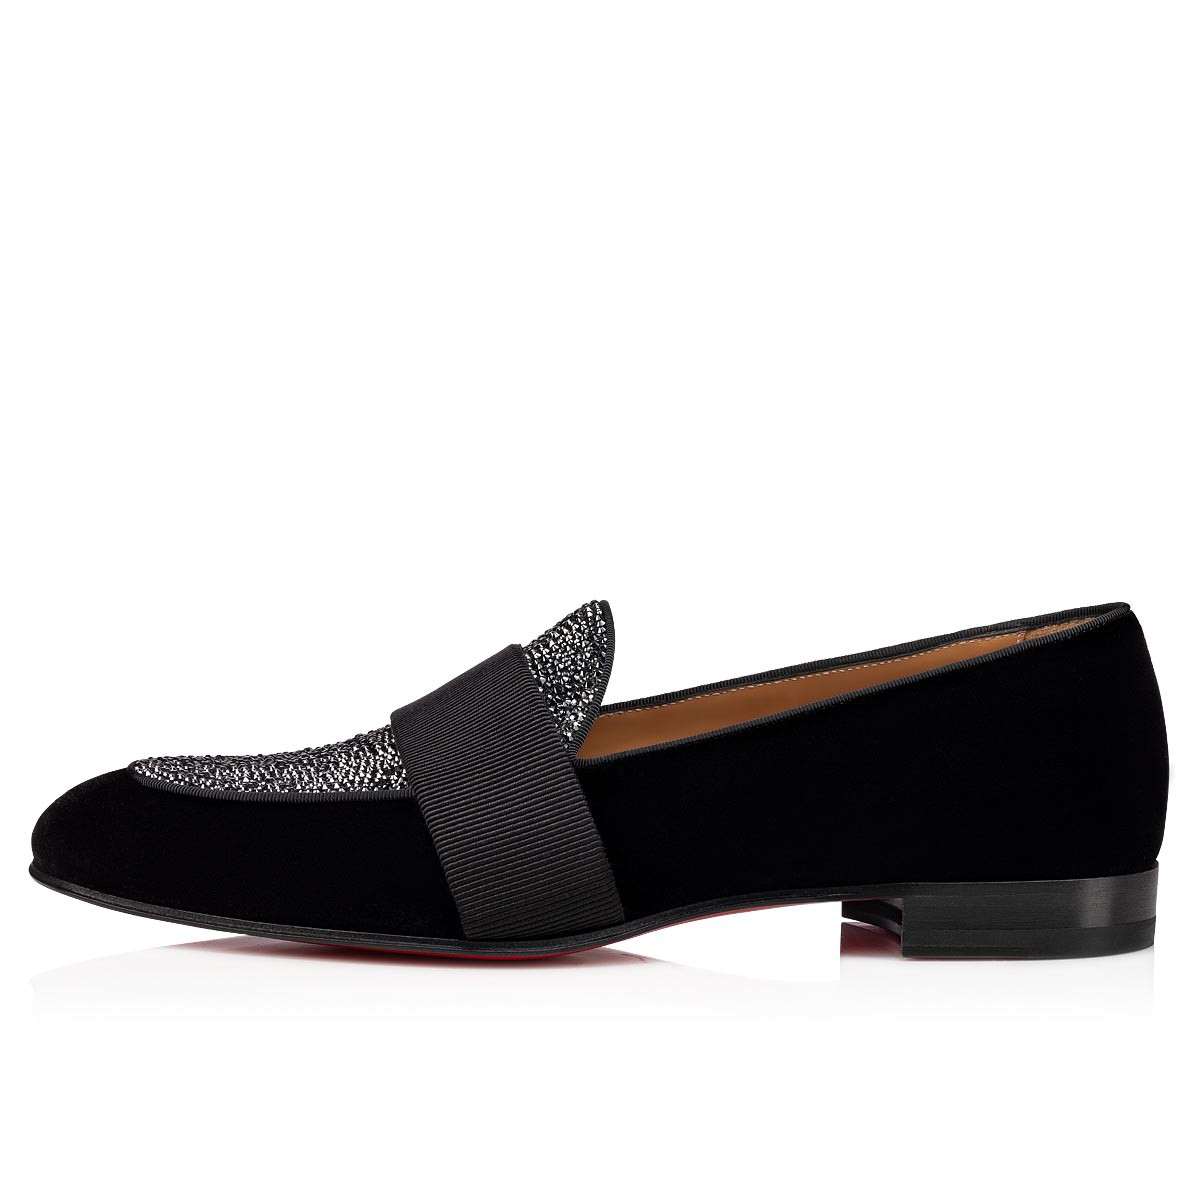 Shoes - Night On The Nile - Christian Louboutin